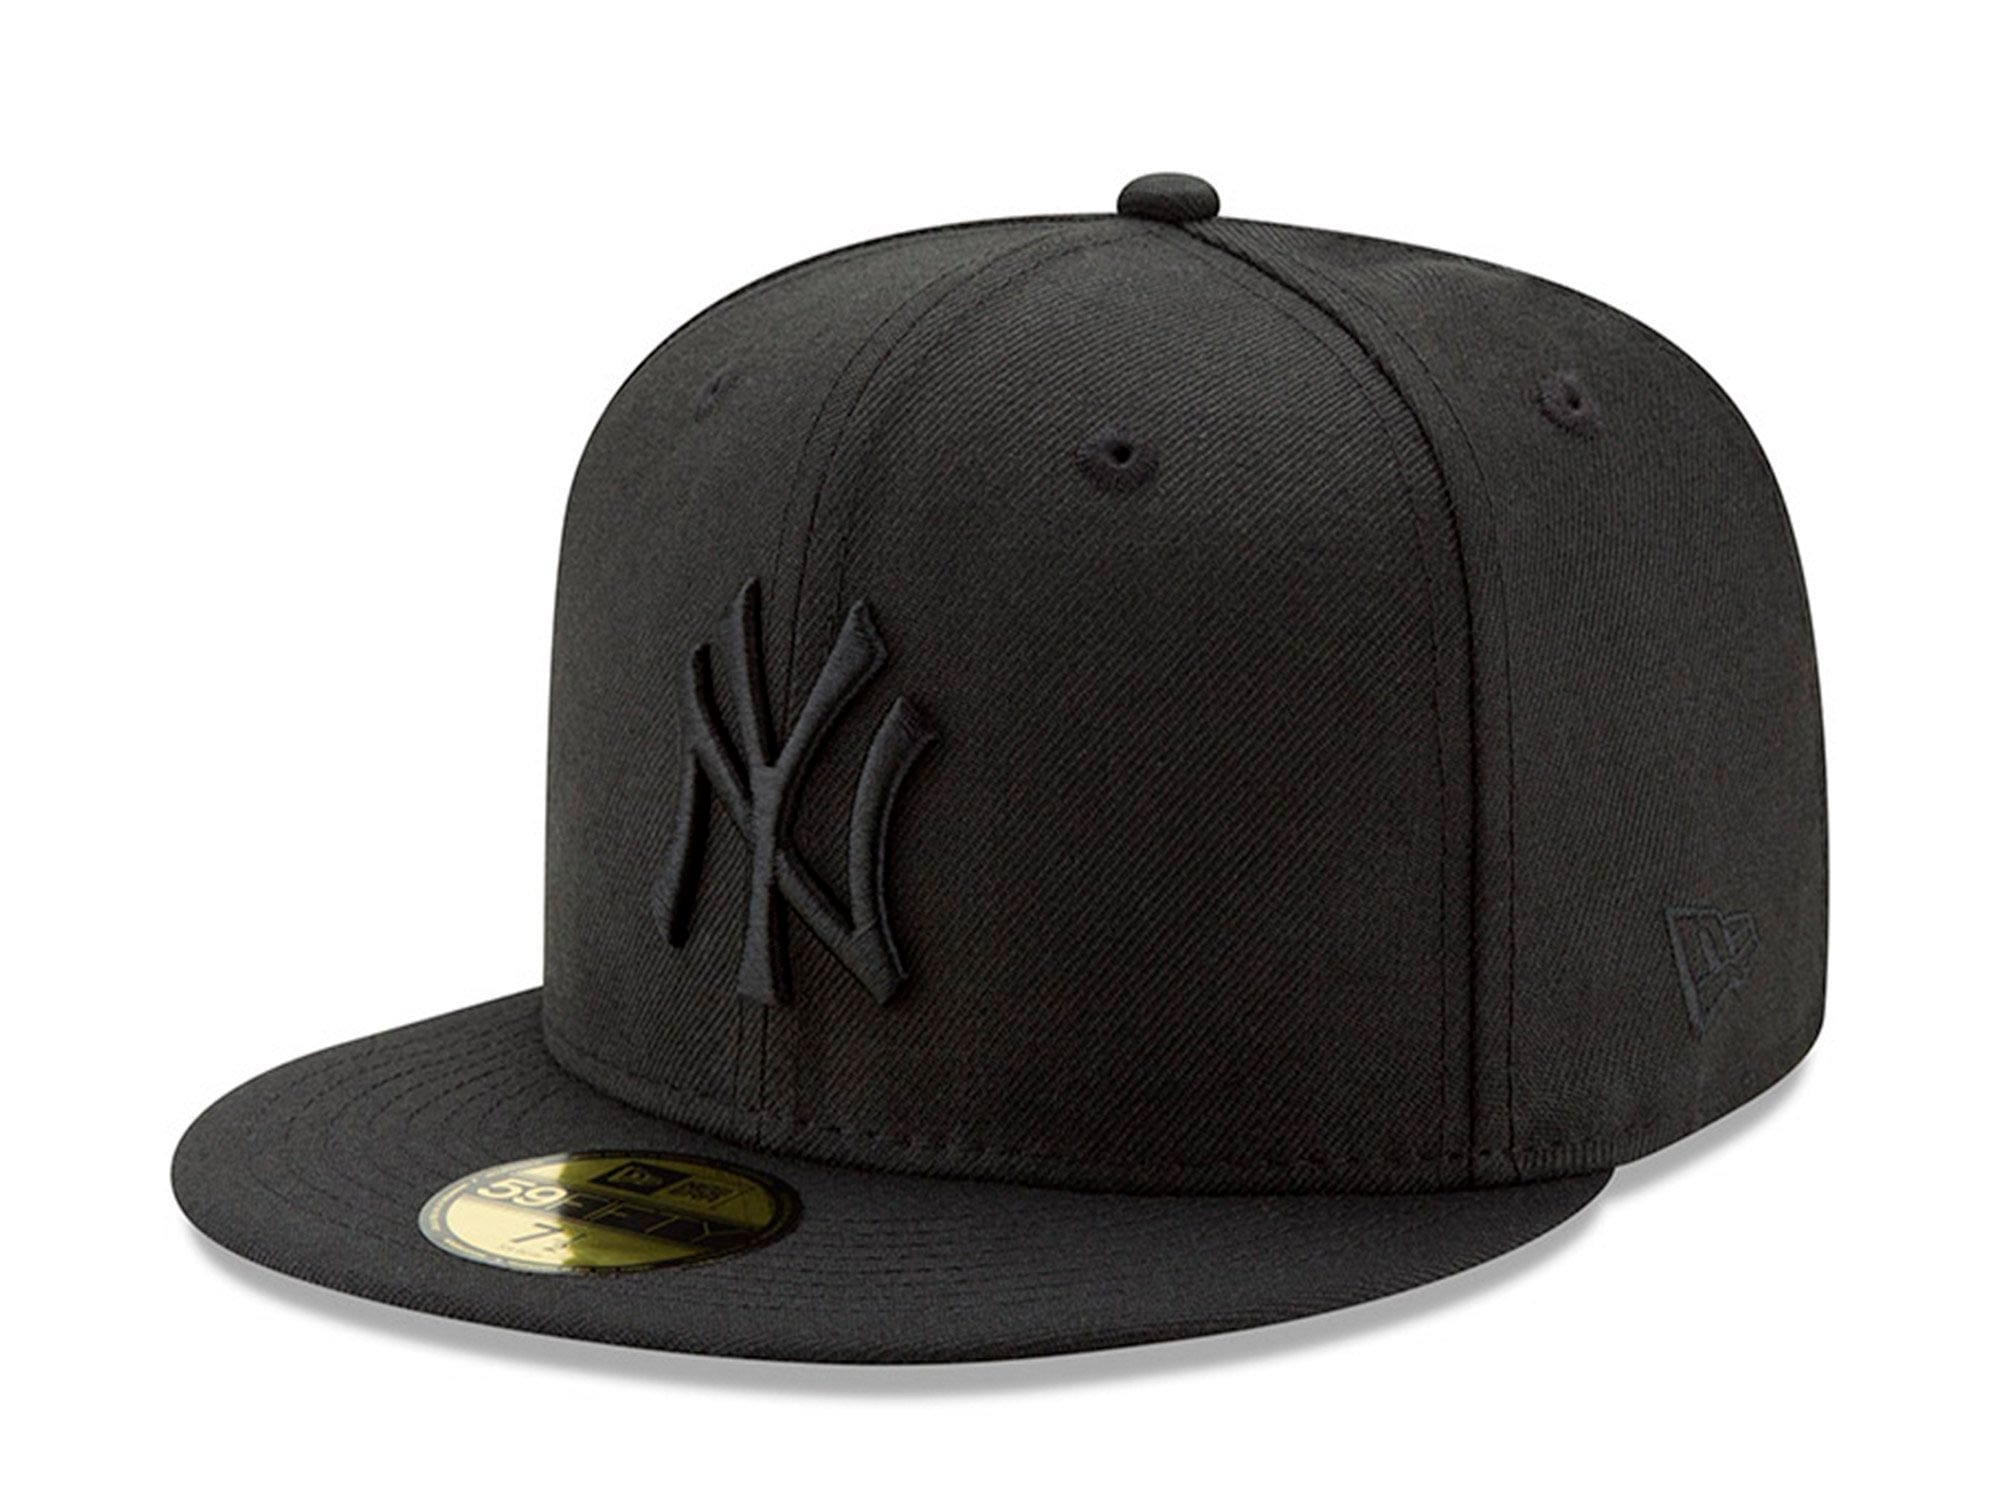 Jockey New Era New York Yankees 5950 Unisex Negro